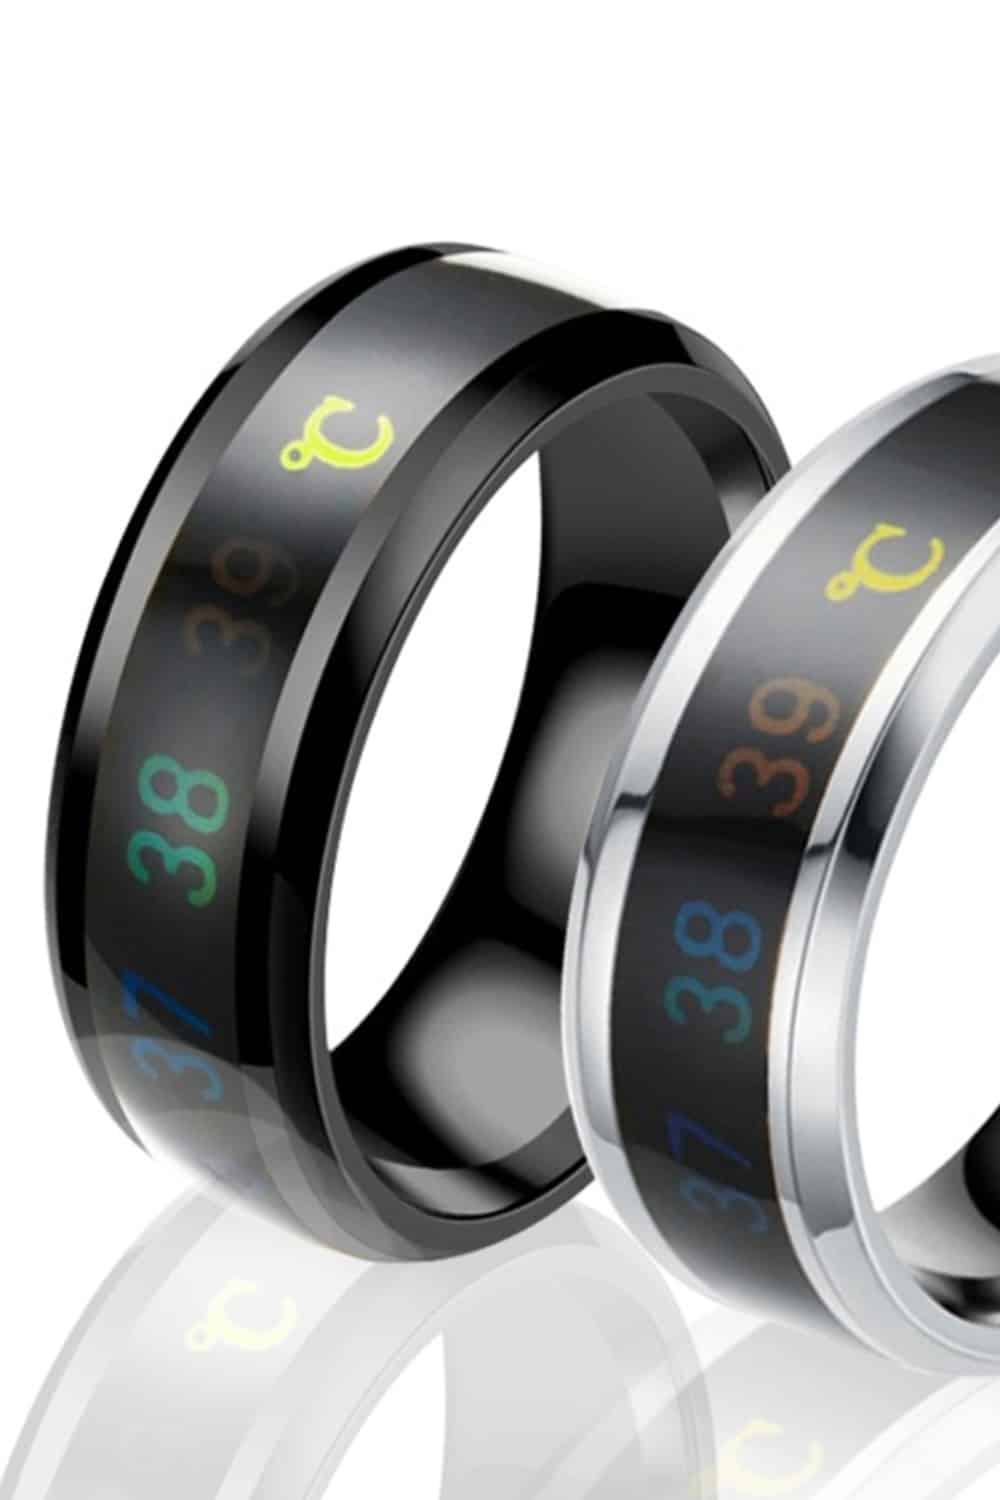 What does a smart ring do